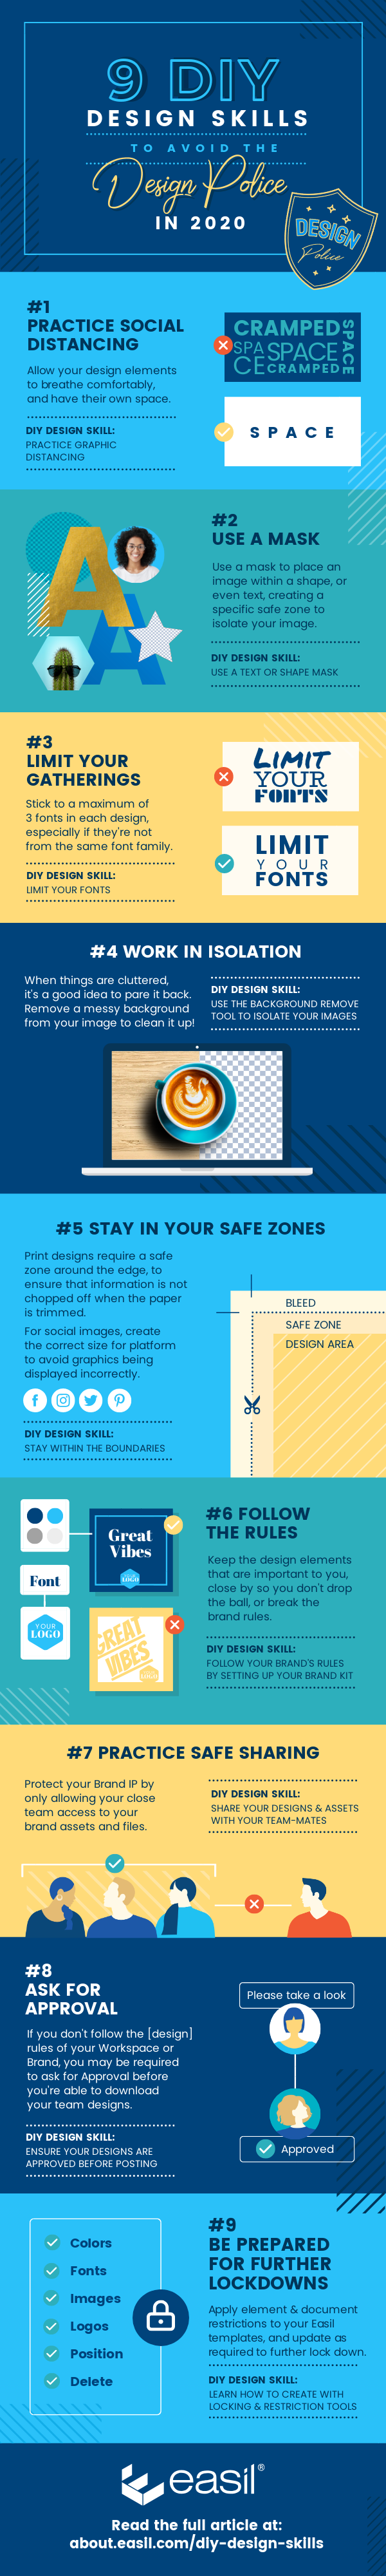 9 DIY Design Skills to Avoid the Design Police in 2020 - Infographic